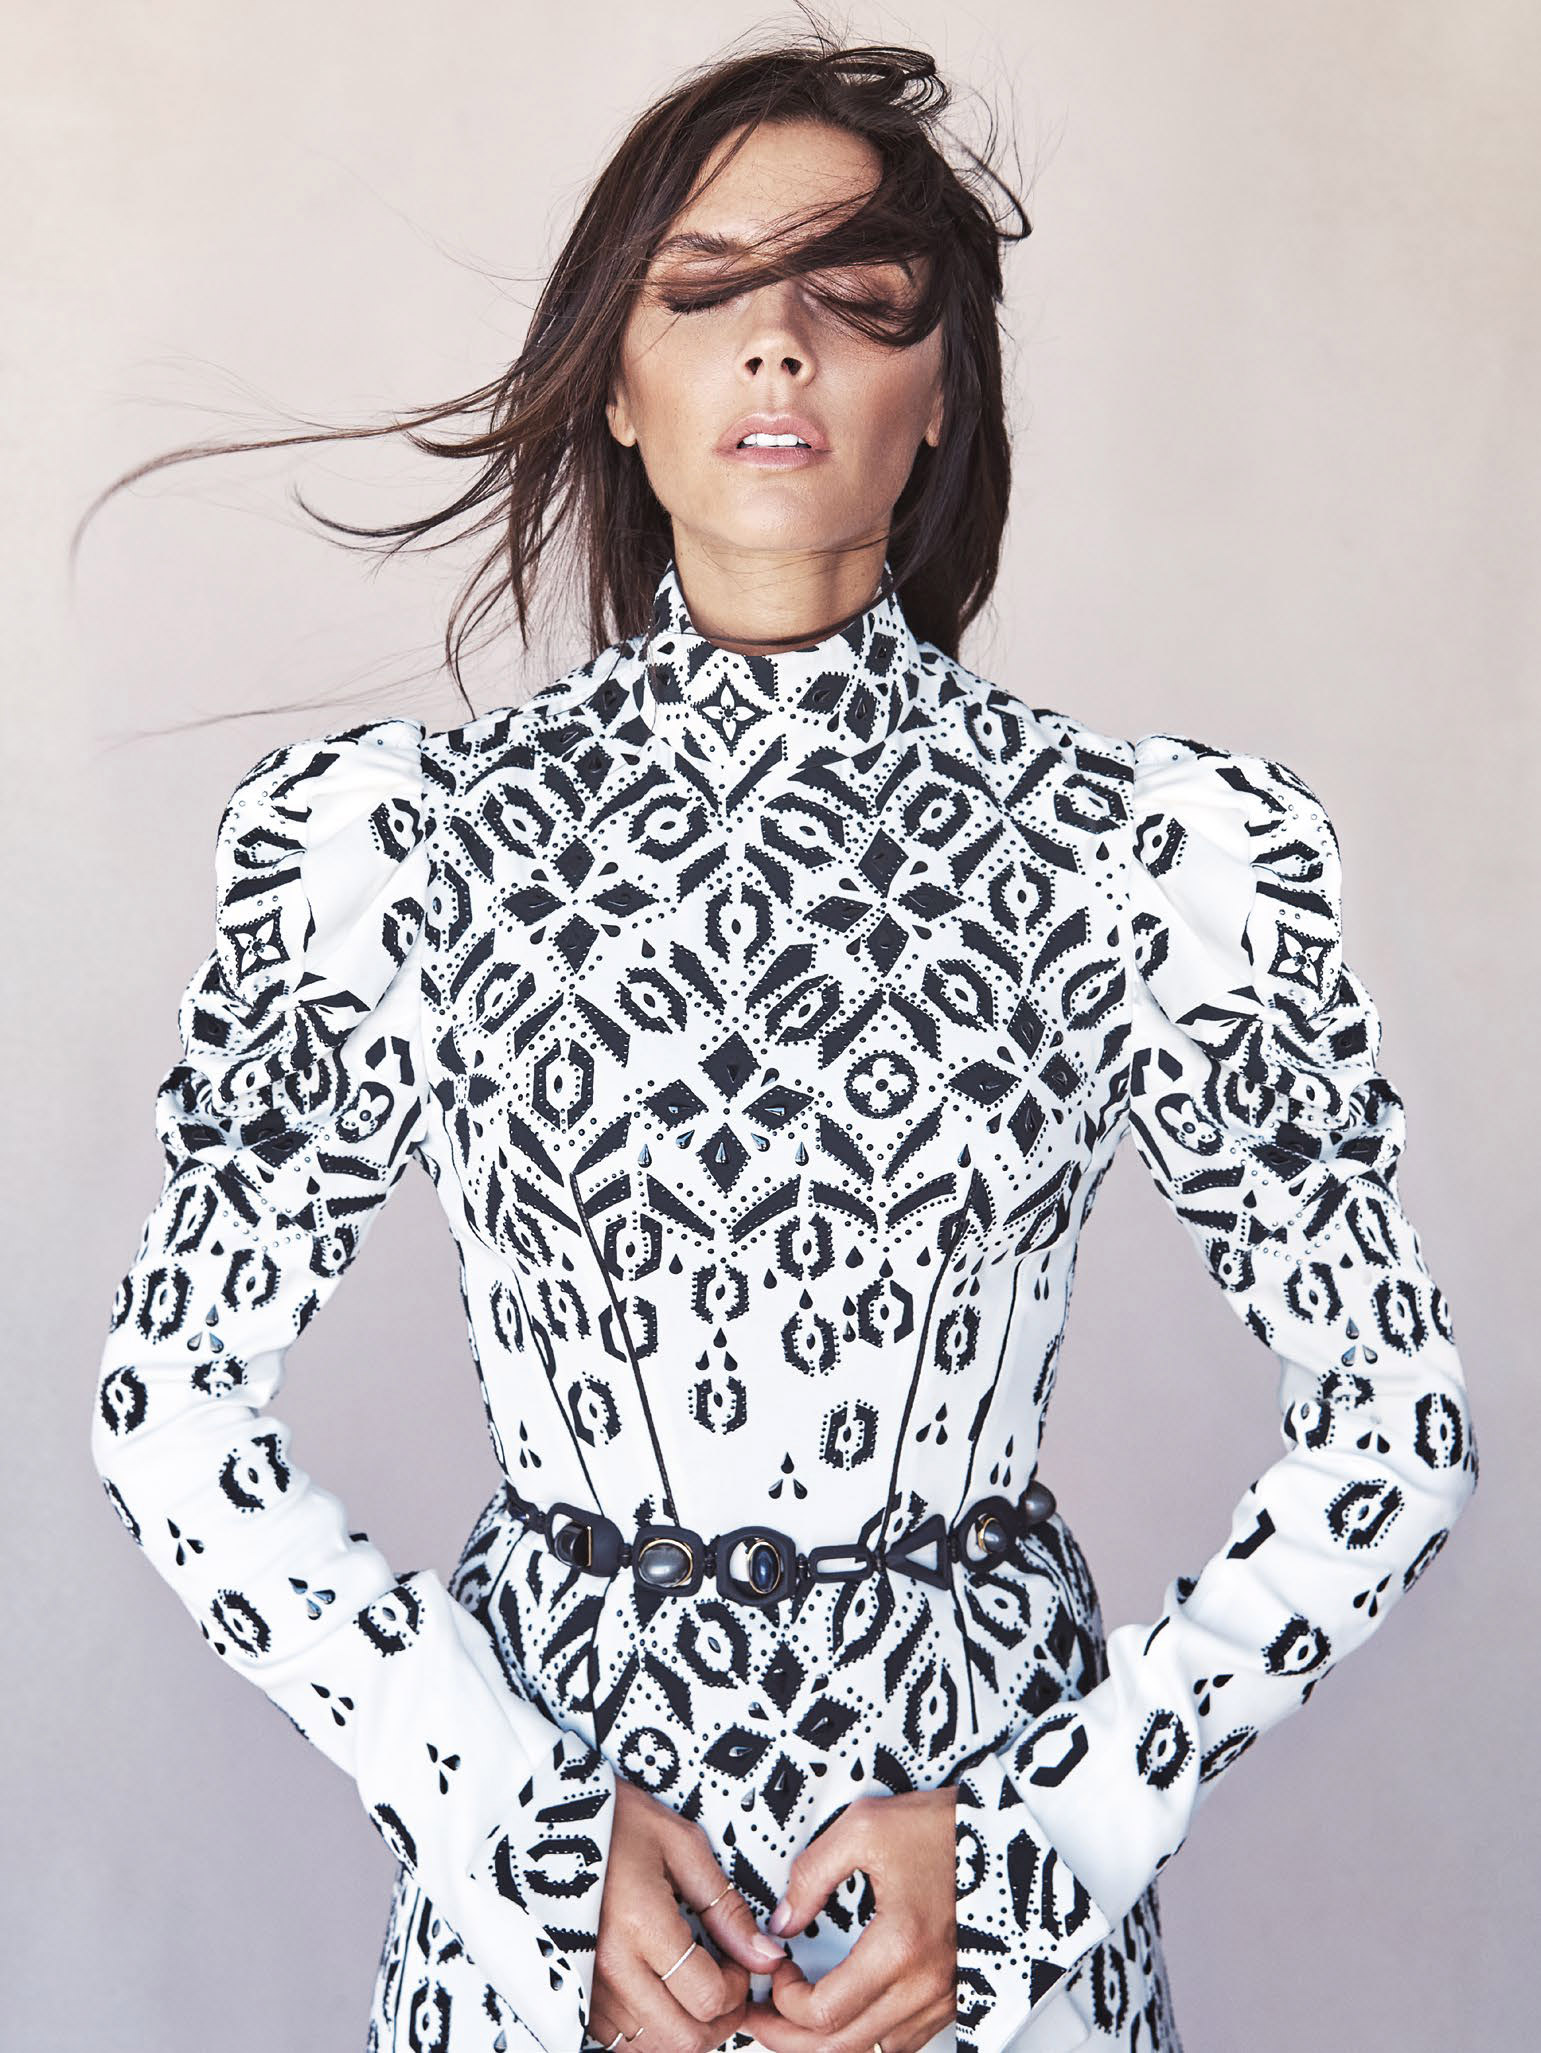 victoria-beckham-by-patrick-demarchelier-for-vogue-australia-august-2015-7